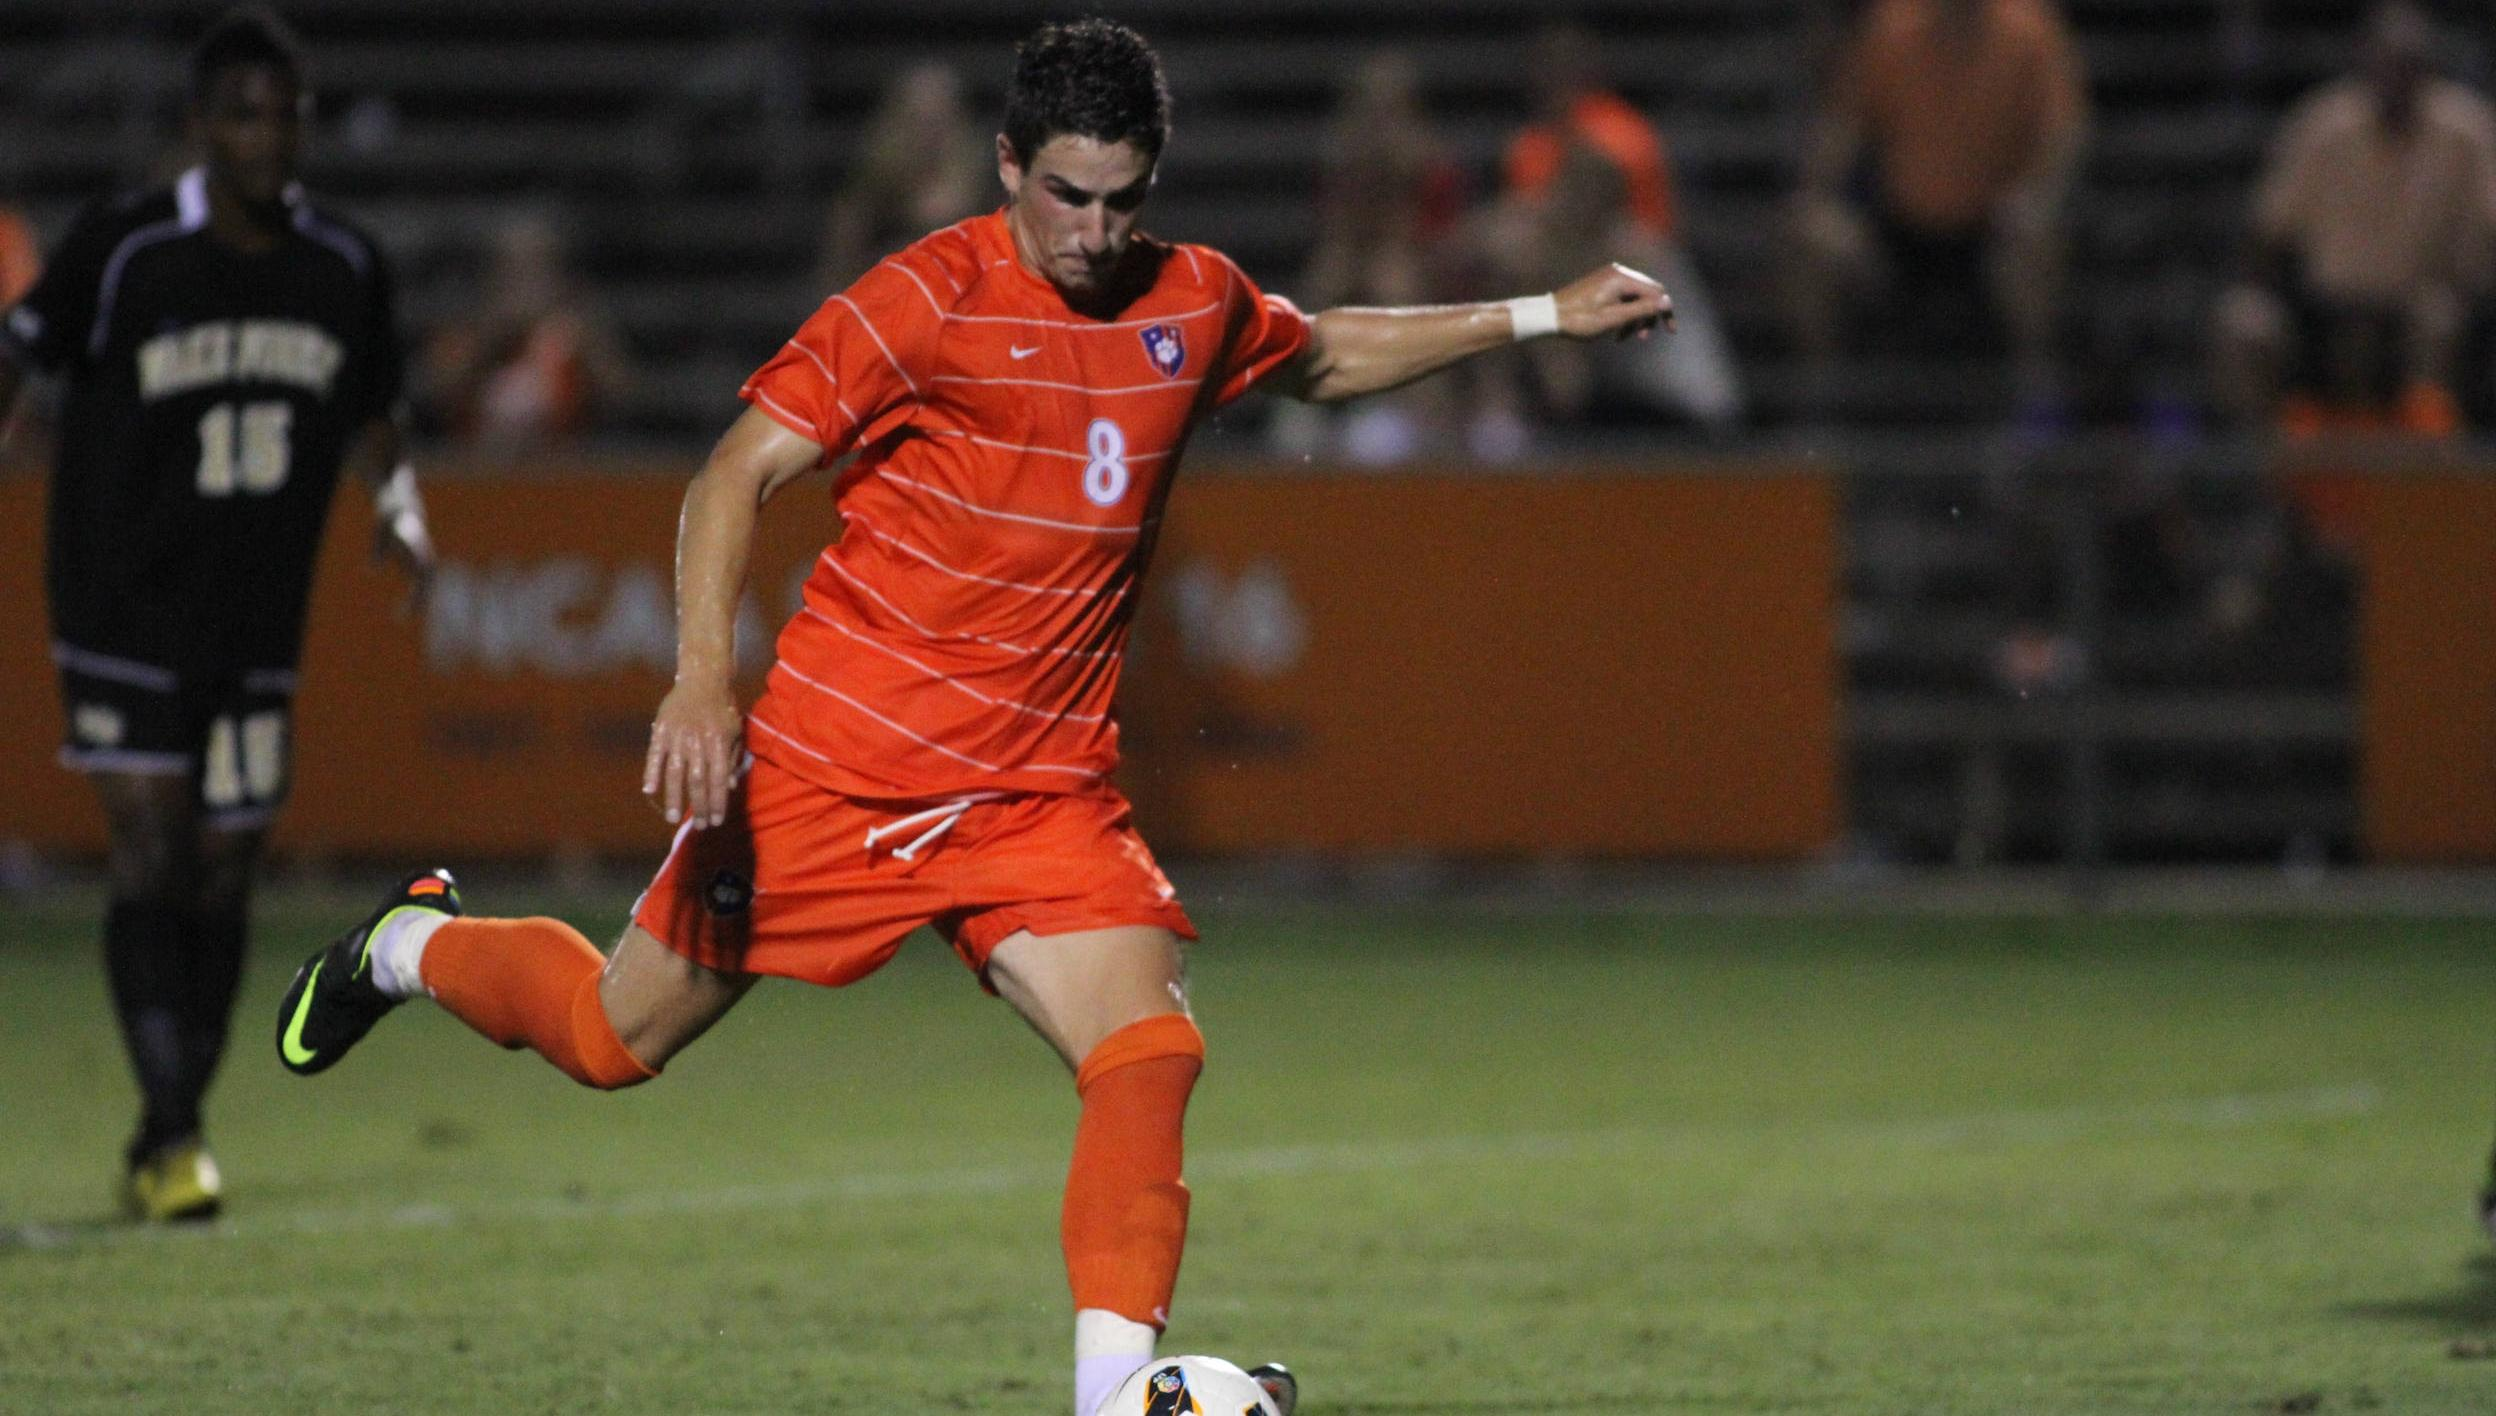 Clemson and #14 Wake Forest Play to a 1-1 Tie